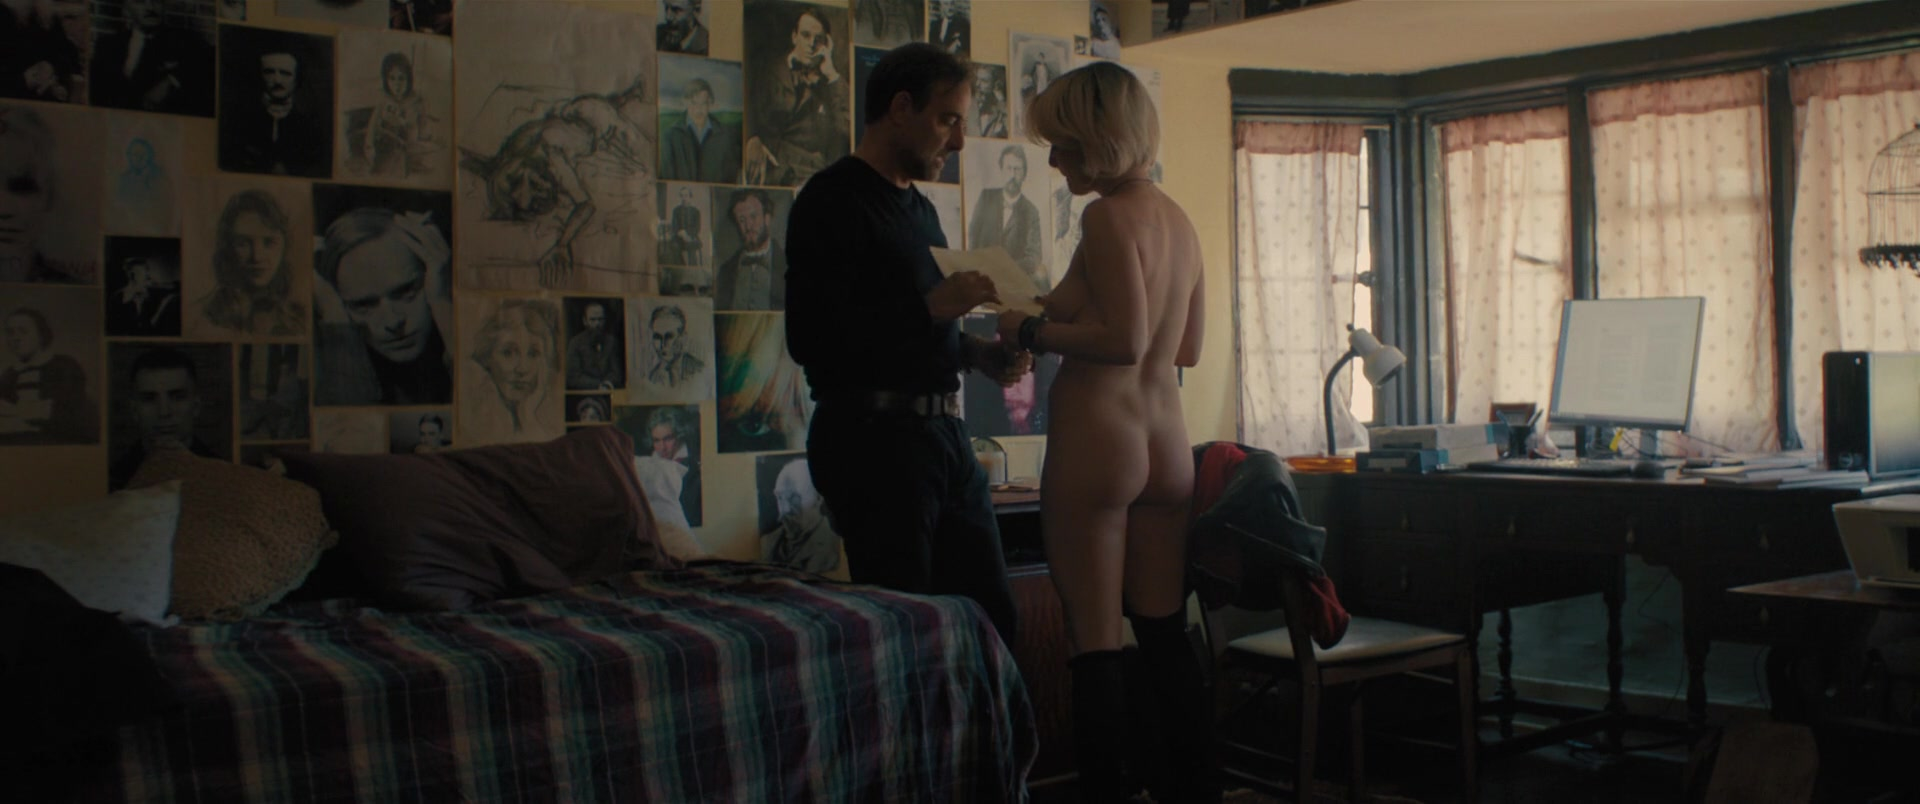 Addison Timlin nude - Submission (2017)